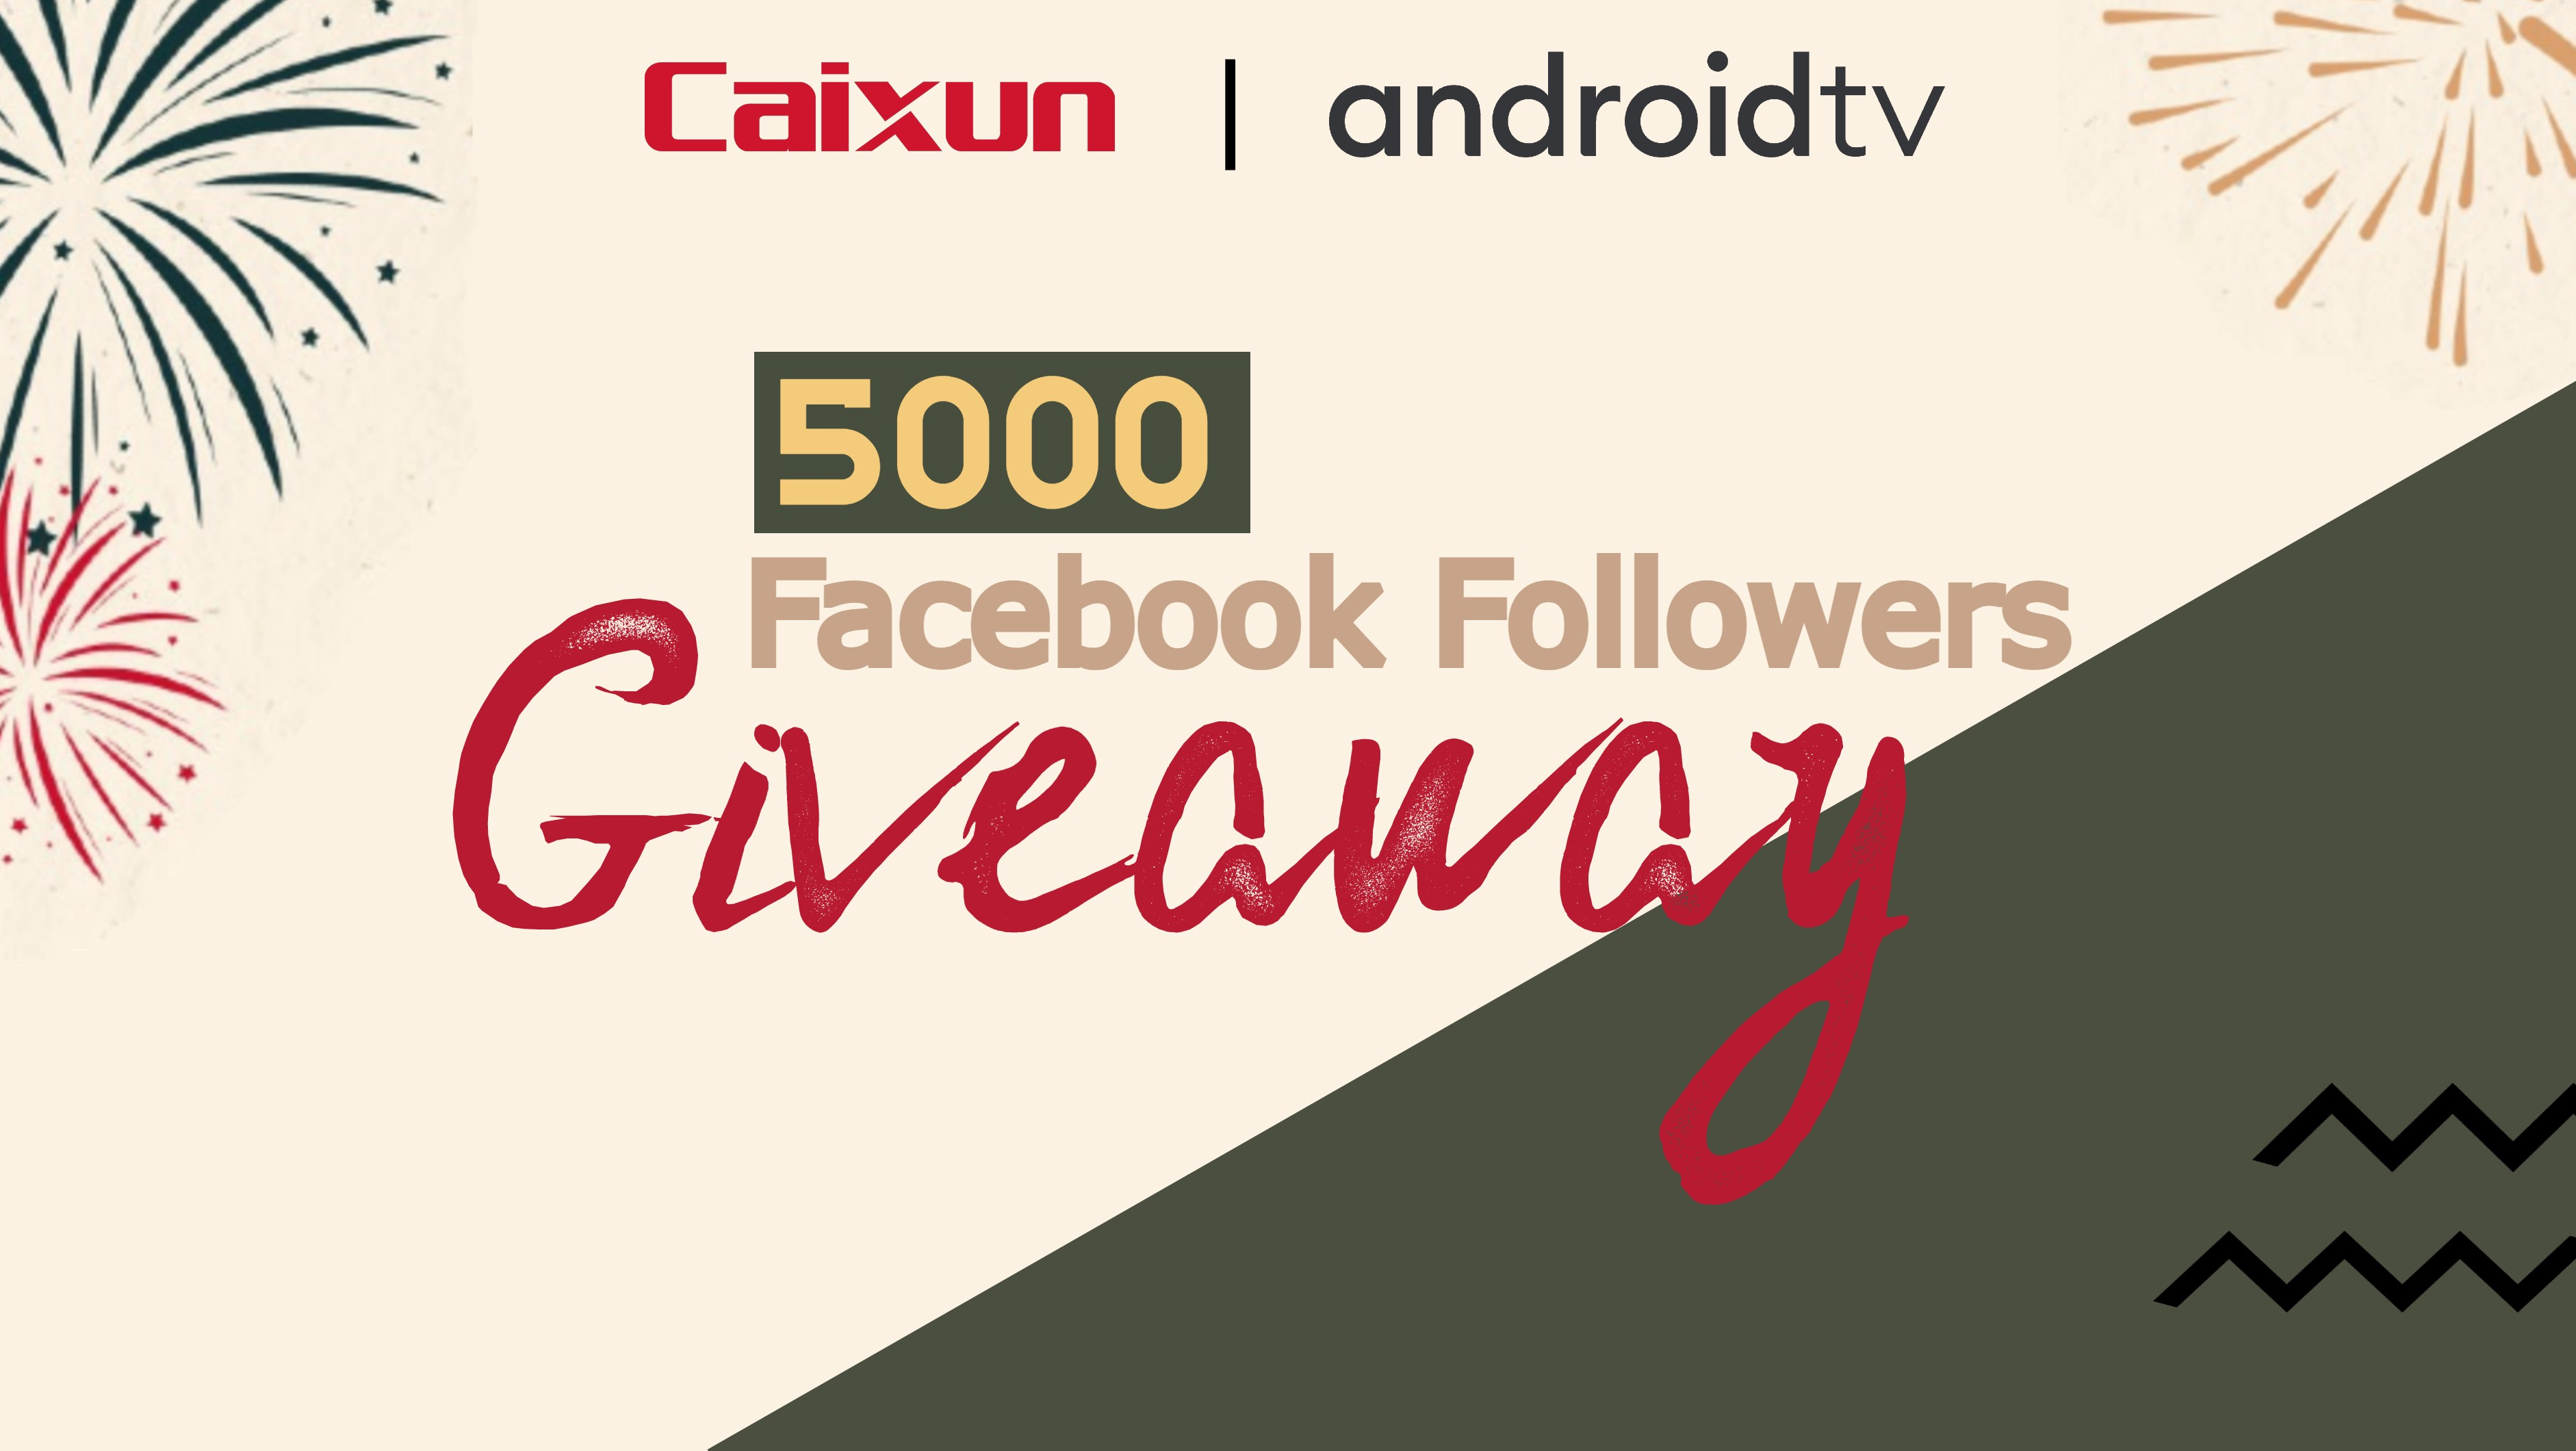 Caixun Malaysia 5K Facebook Followers Giveaway Campaign 2021 : Full Terms & Conditions